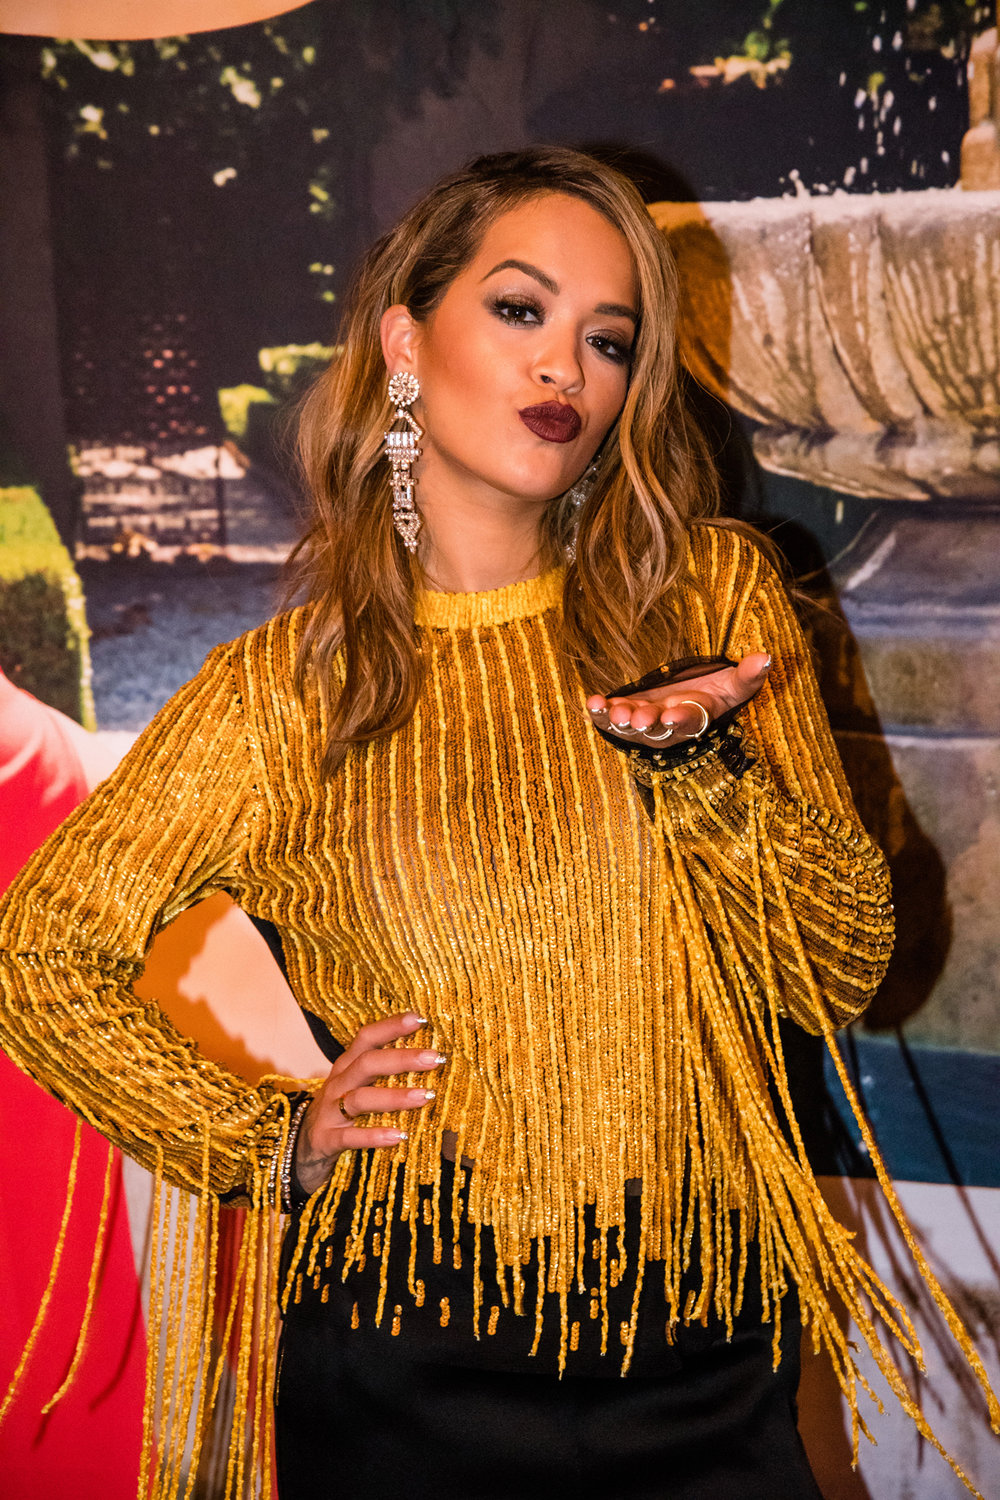 PrettyLittleThing PLT X Olivia Culpo Collection  Celebrity Launch Party Rita Ora.jpg